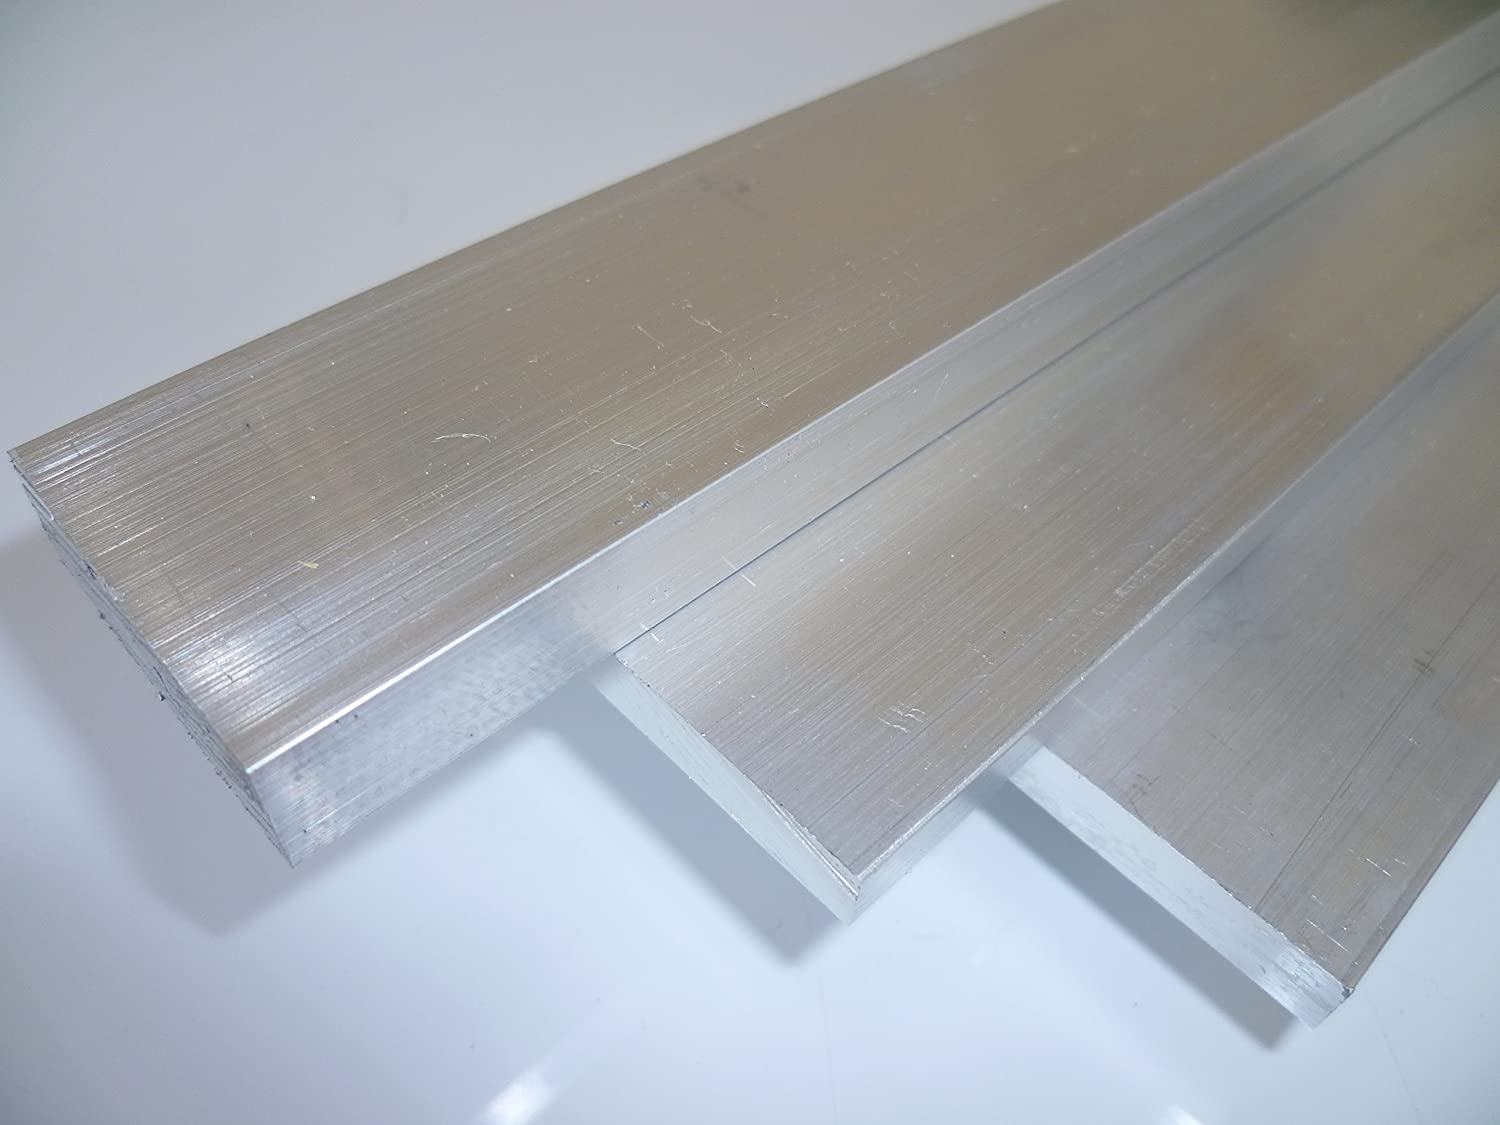 B&T Metal aluminium flat 2.36 x 0.16 inches weldable, suitable for anodising in lengths of approx. 78.74 +0/-0.12 inches.